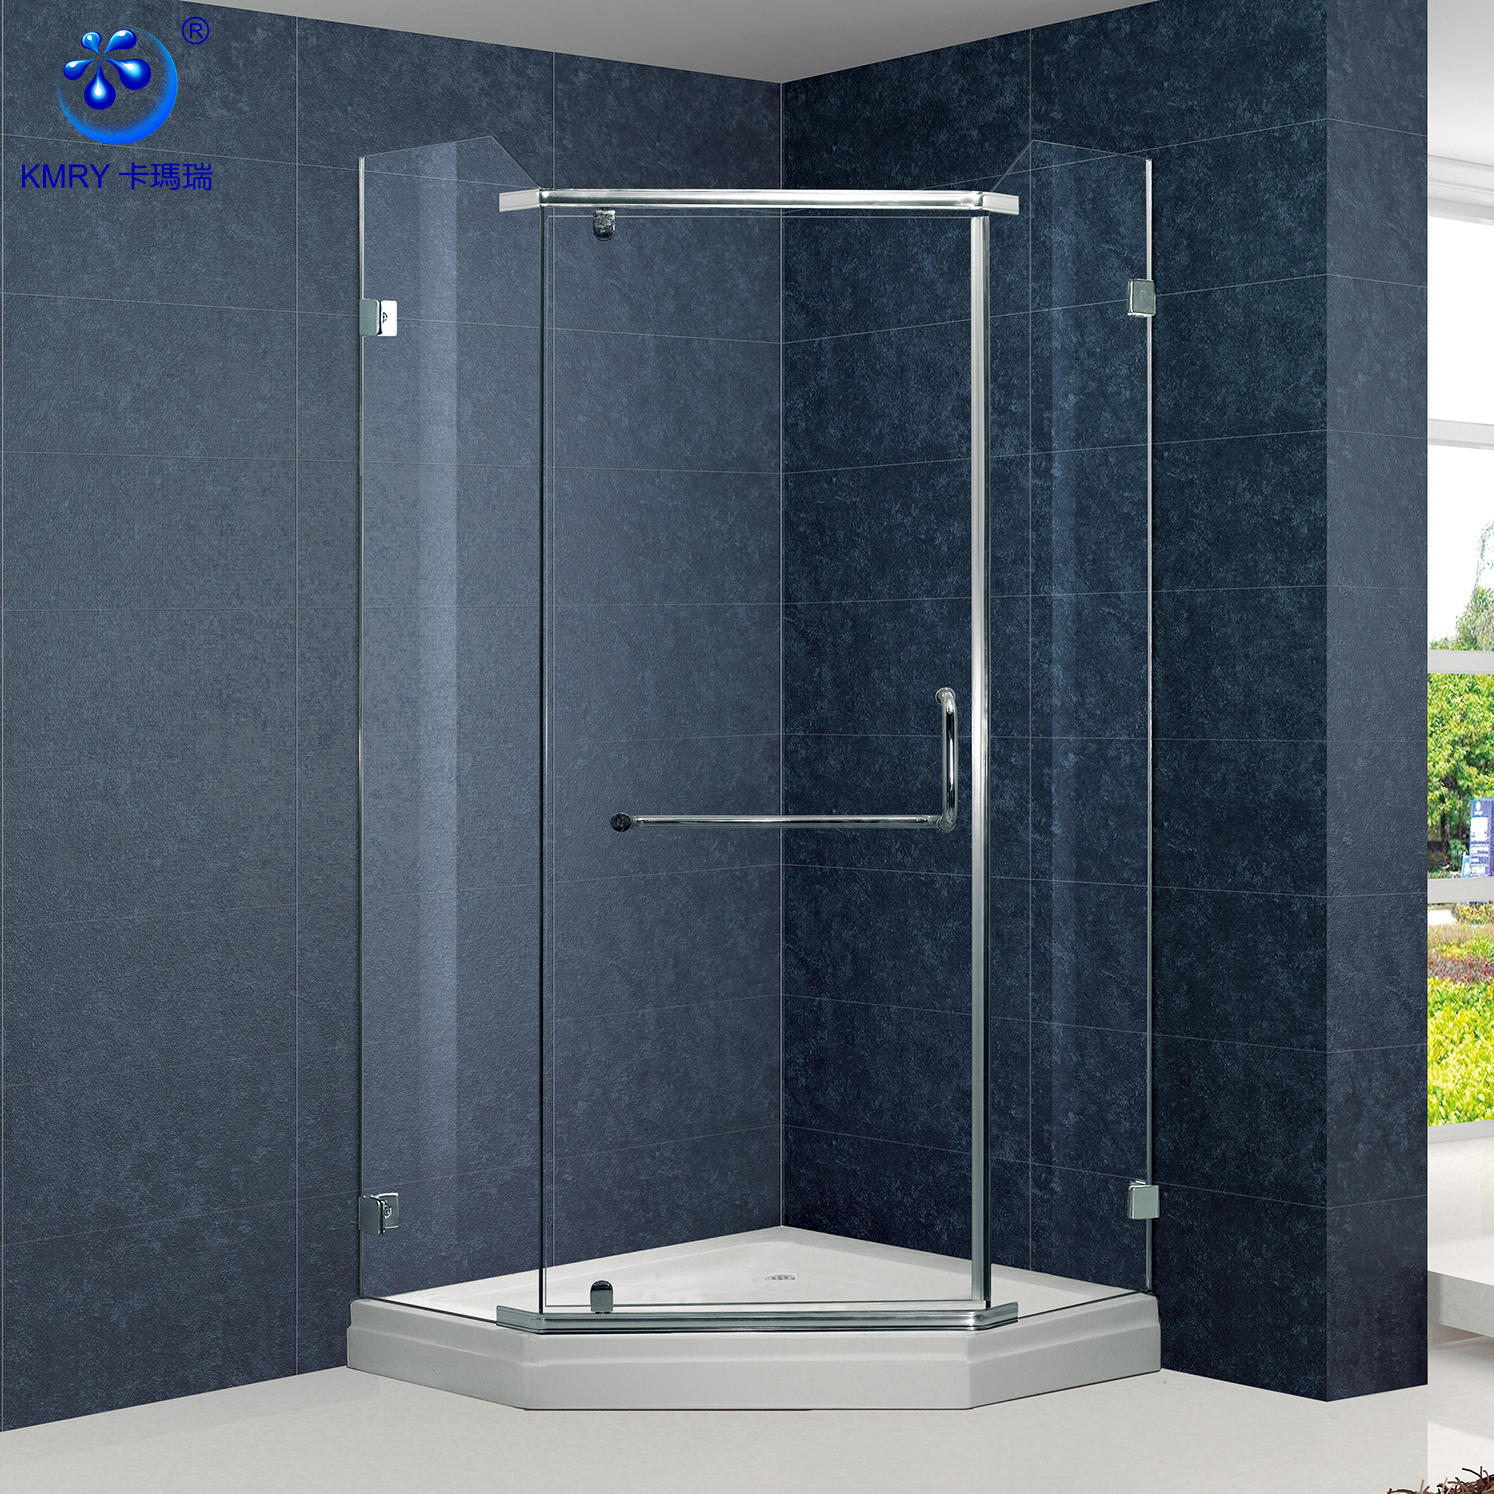 Raindrop Glass Shower Door, Raindrop Glass Shower Door Suppliers and ...